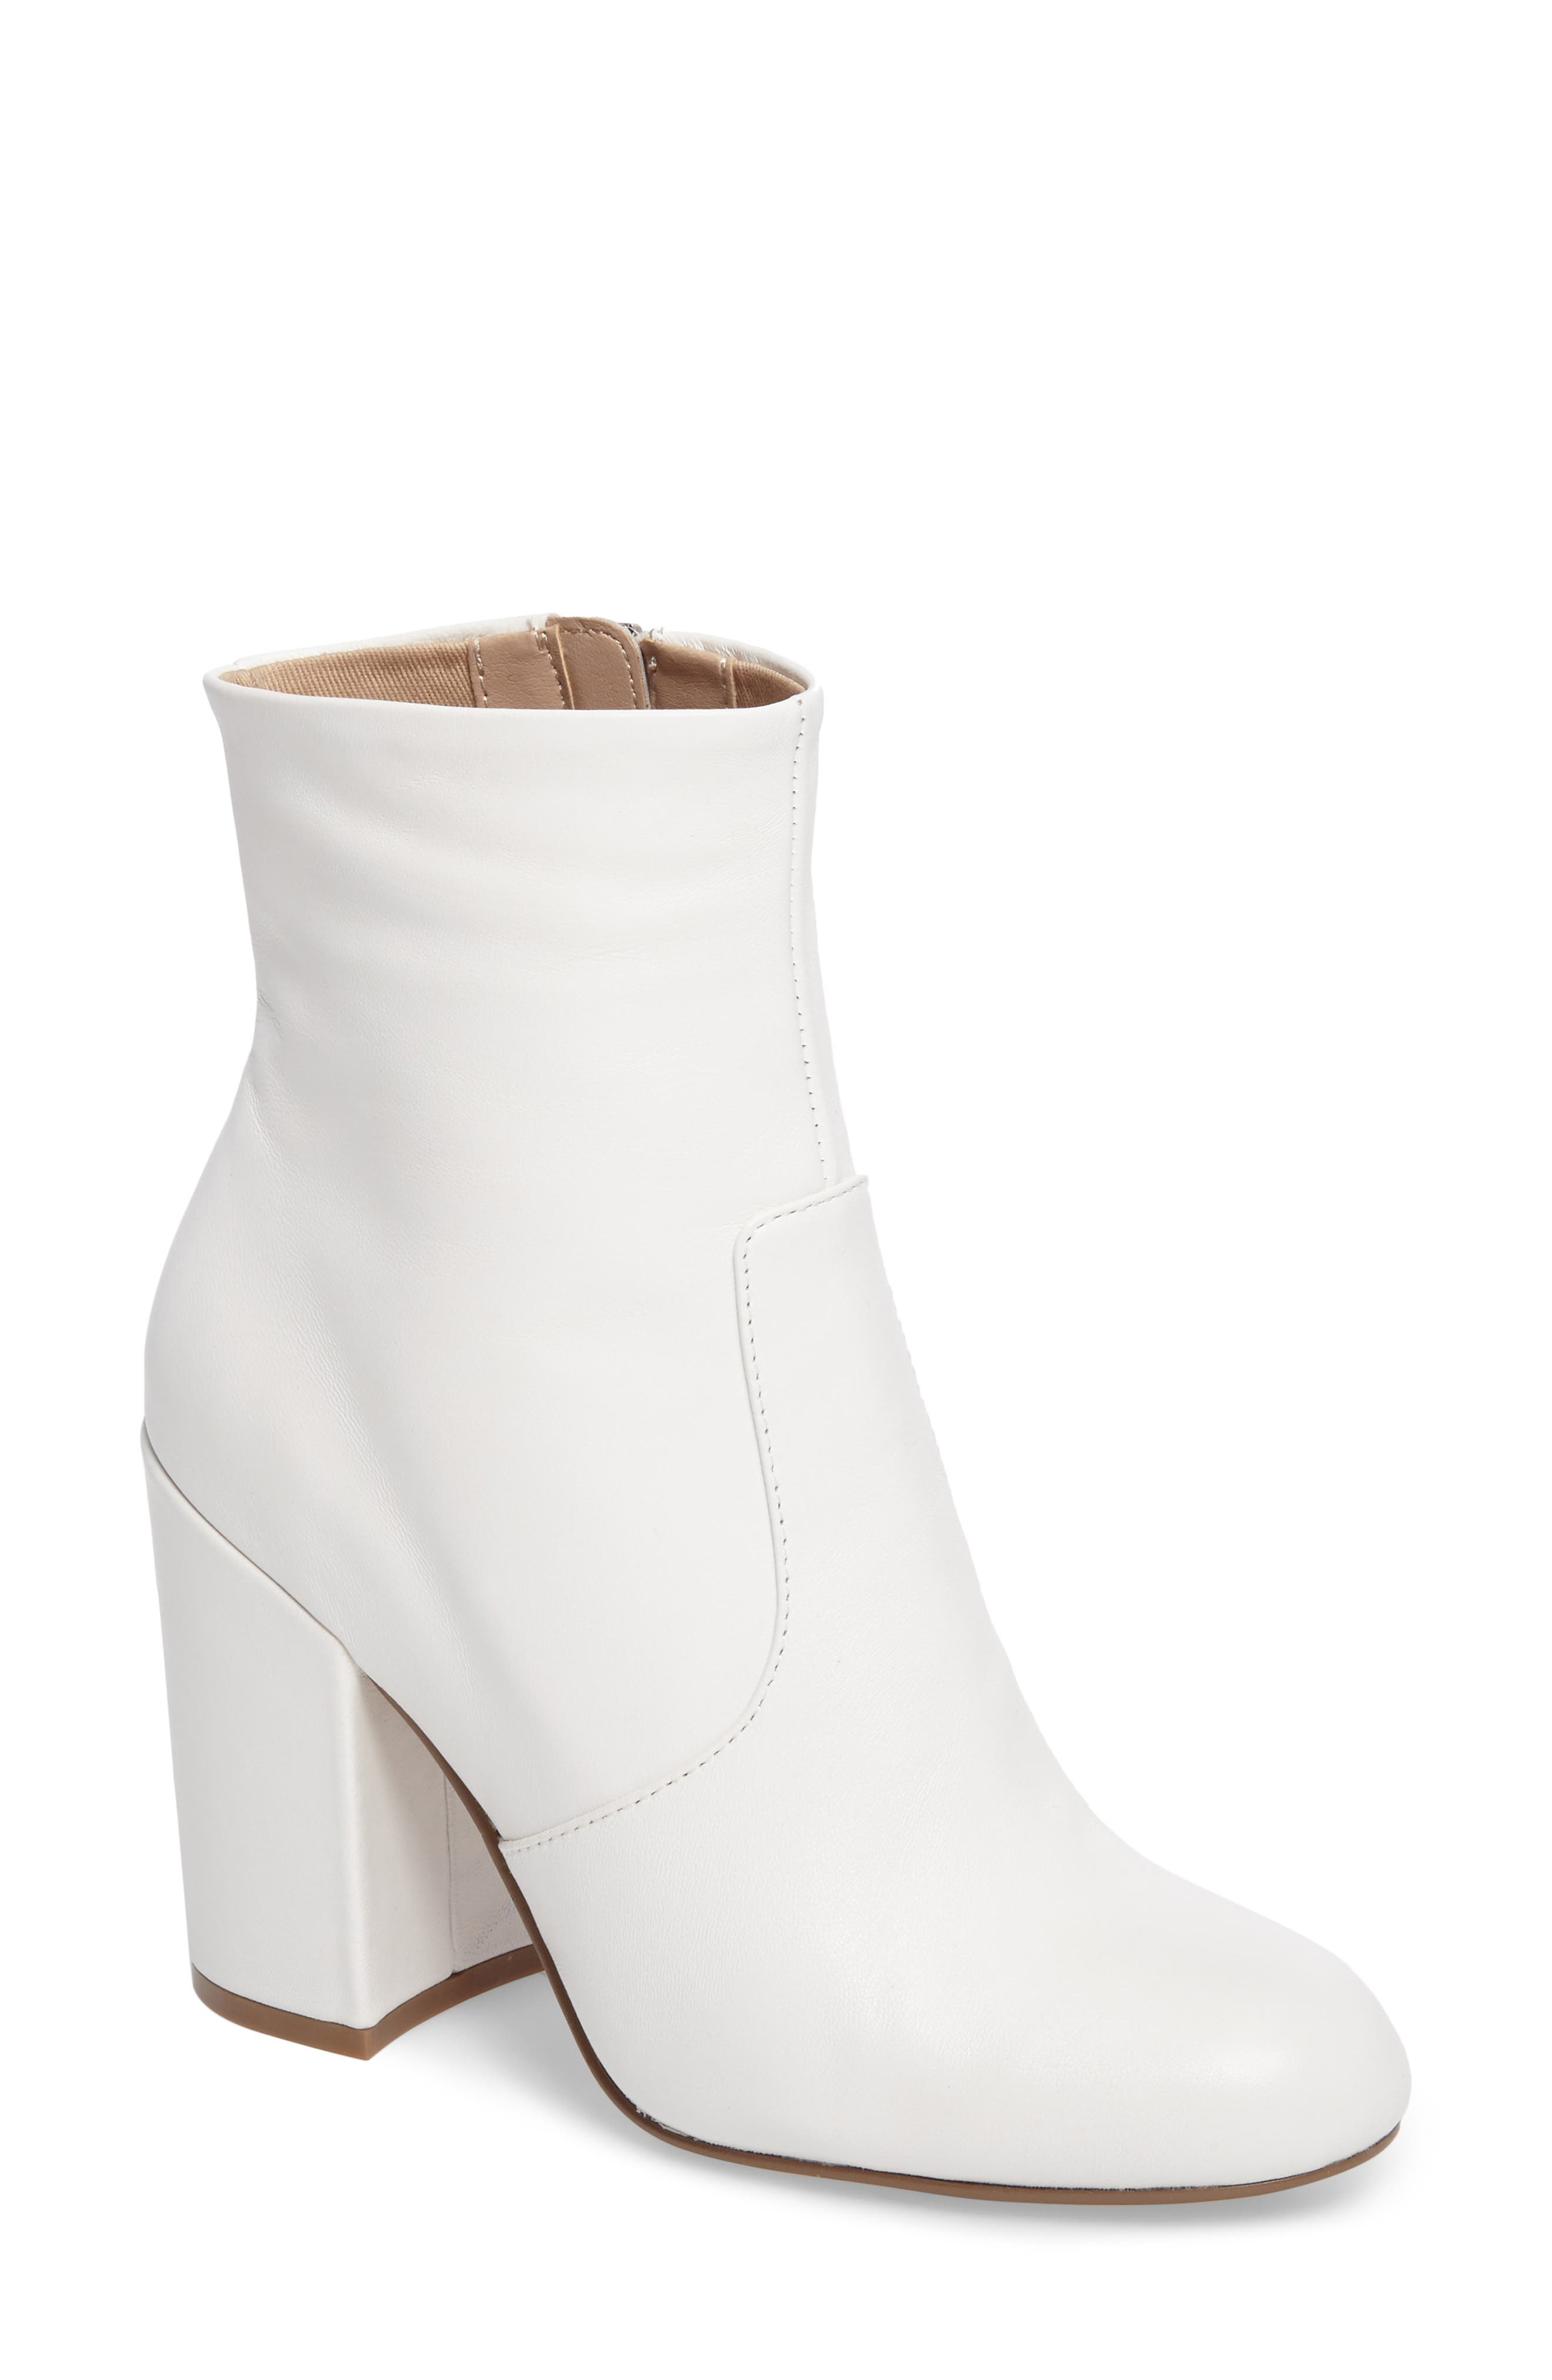 Gazer Bootie,                         Main,                         color, White Leather